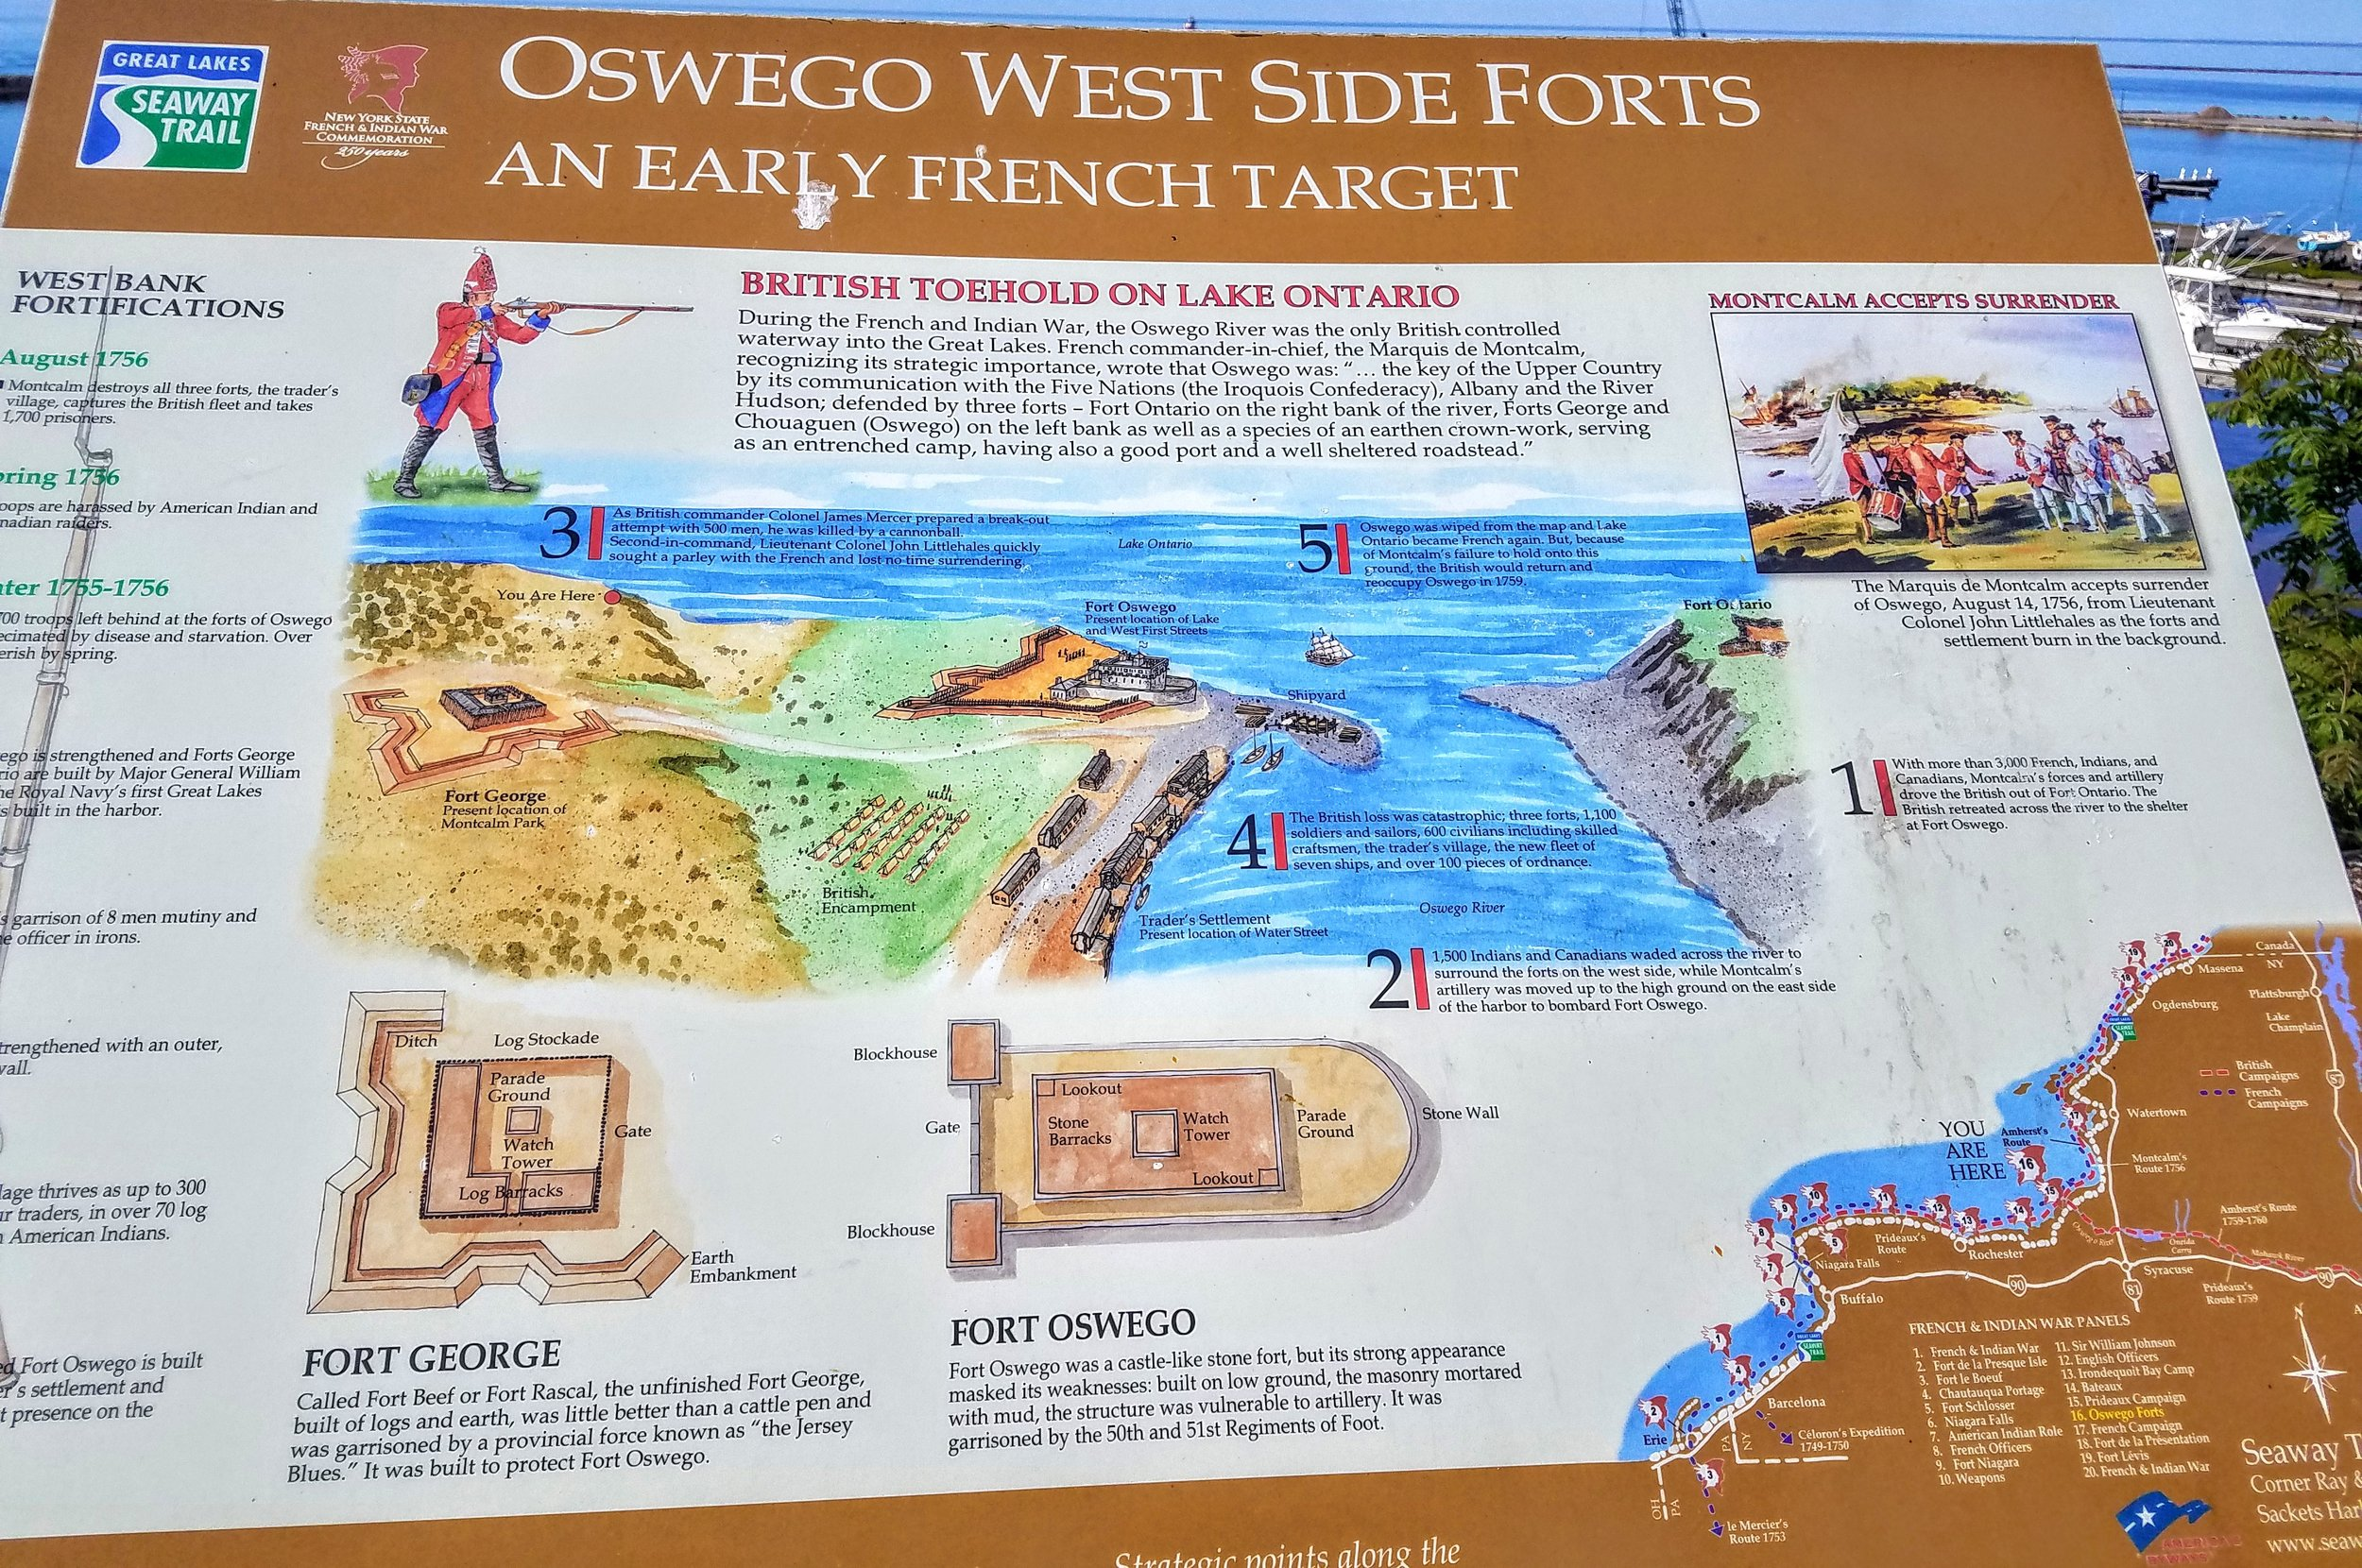 A little history on Fort George and the strategic importance of Oswego, NY